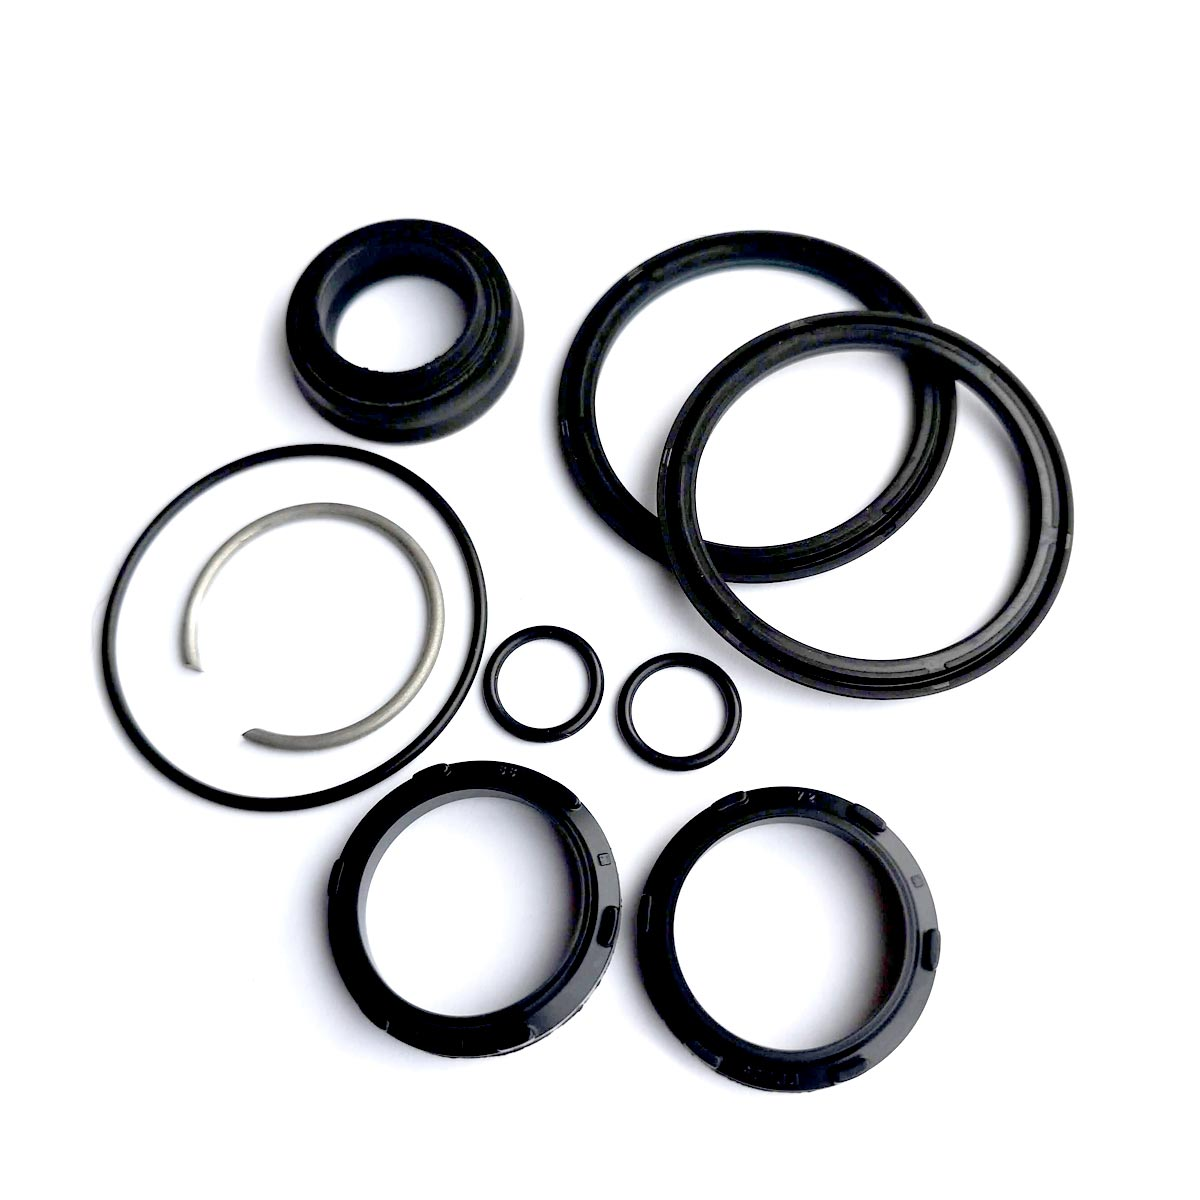 Horizontal Cylinder Seal Kit - Underpinner Spares